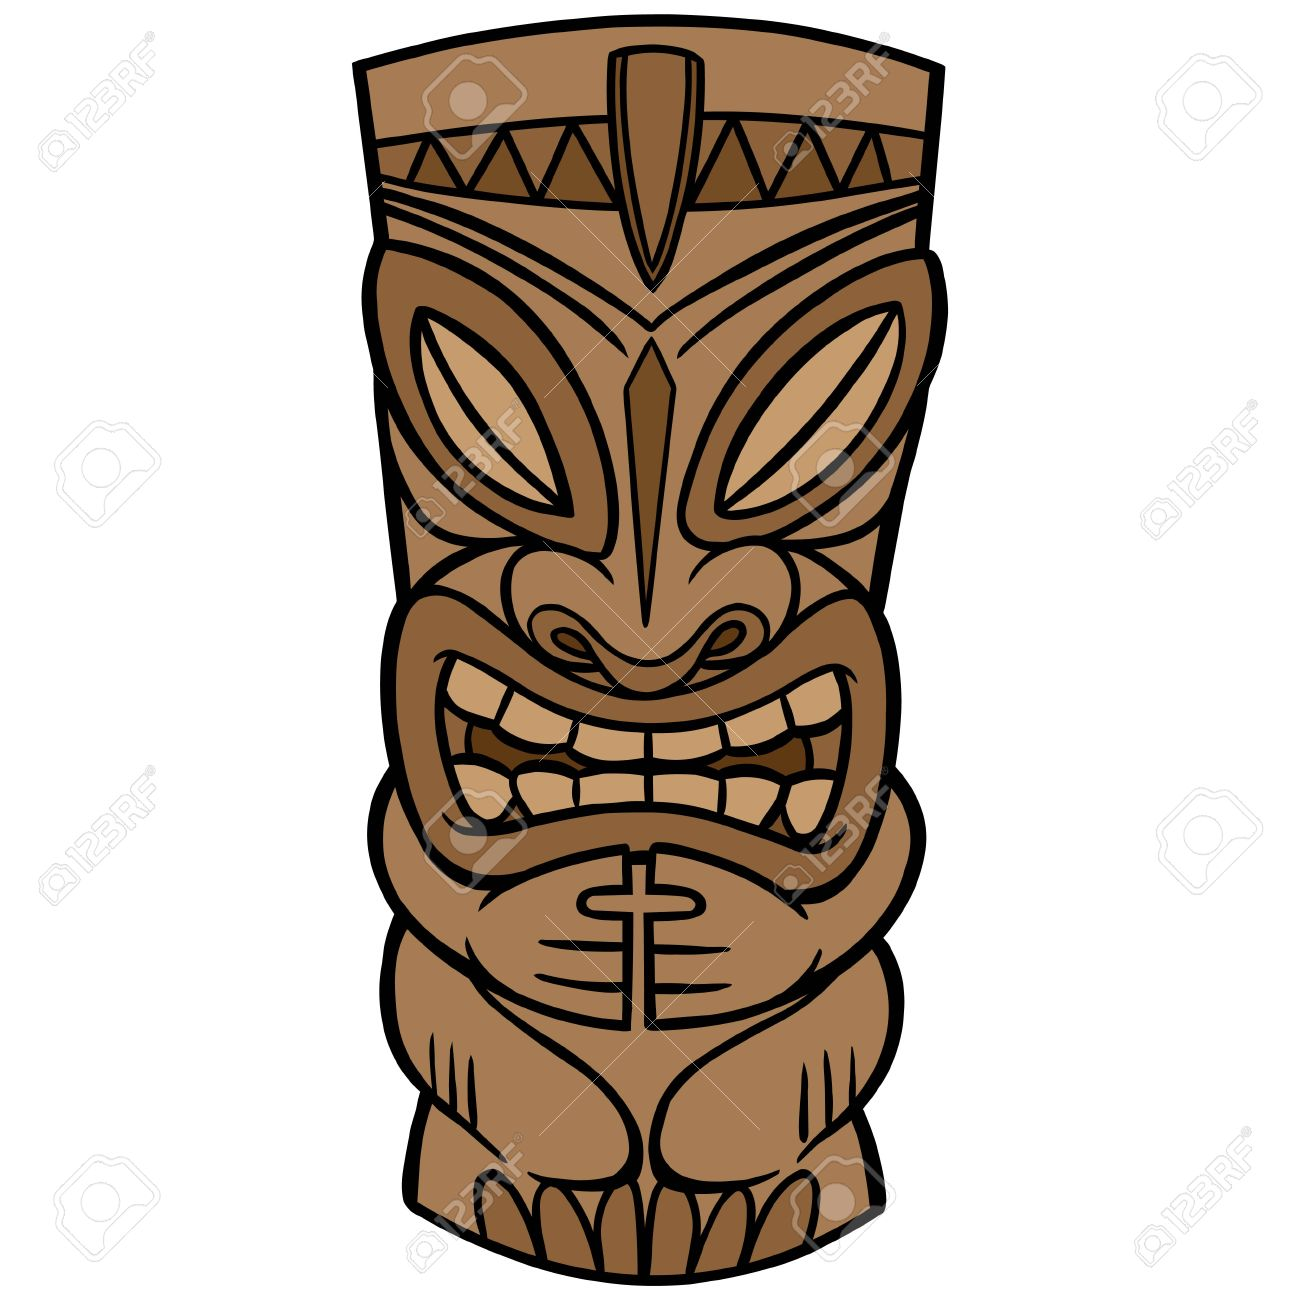 tiki royalty free cliparts vectors and stock illustration image rh 123rf com vector tiki mask tiki vector image